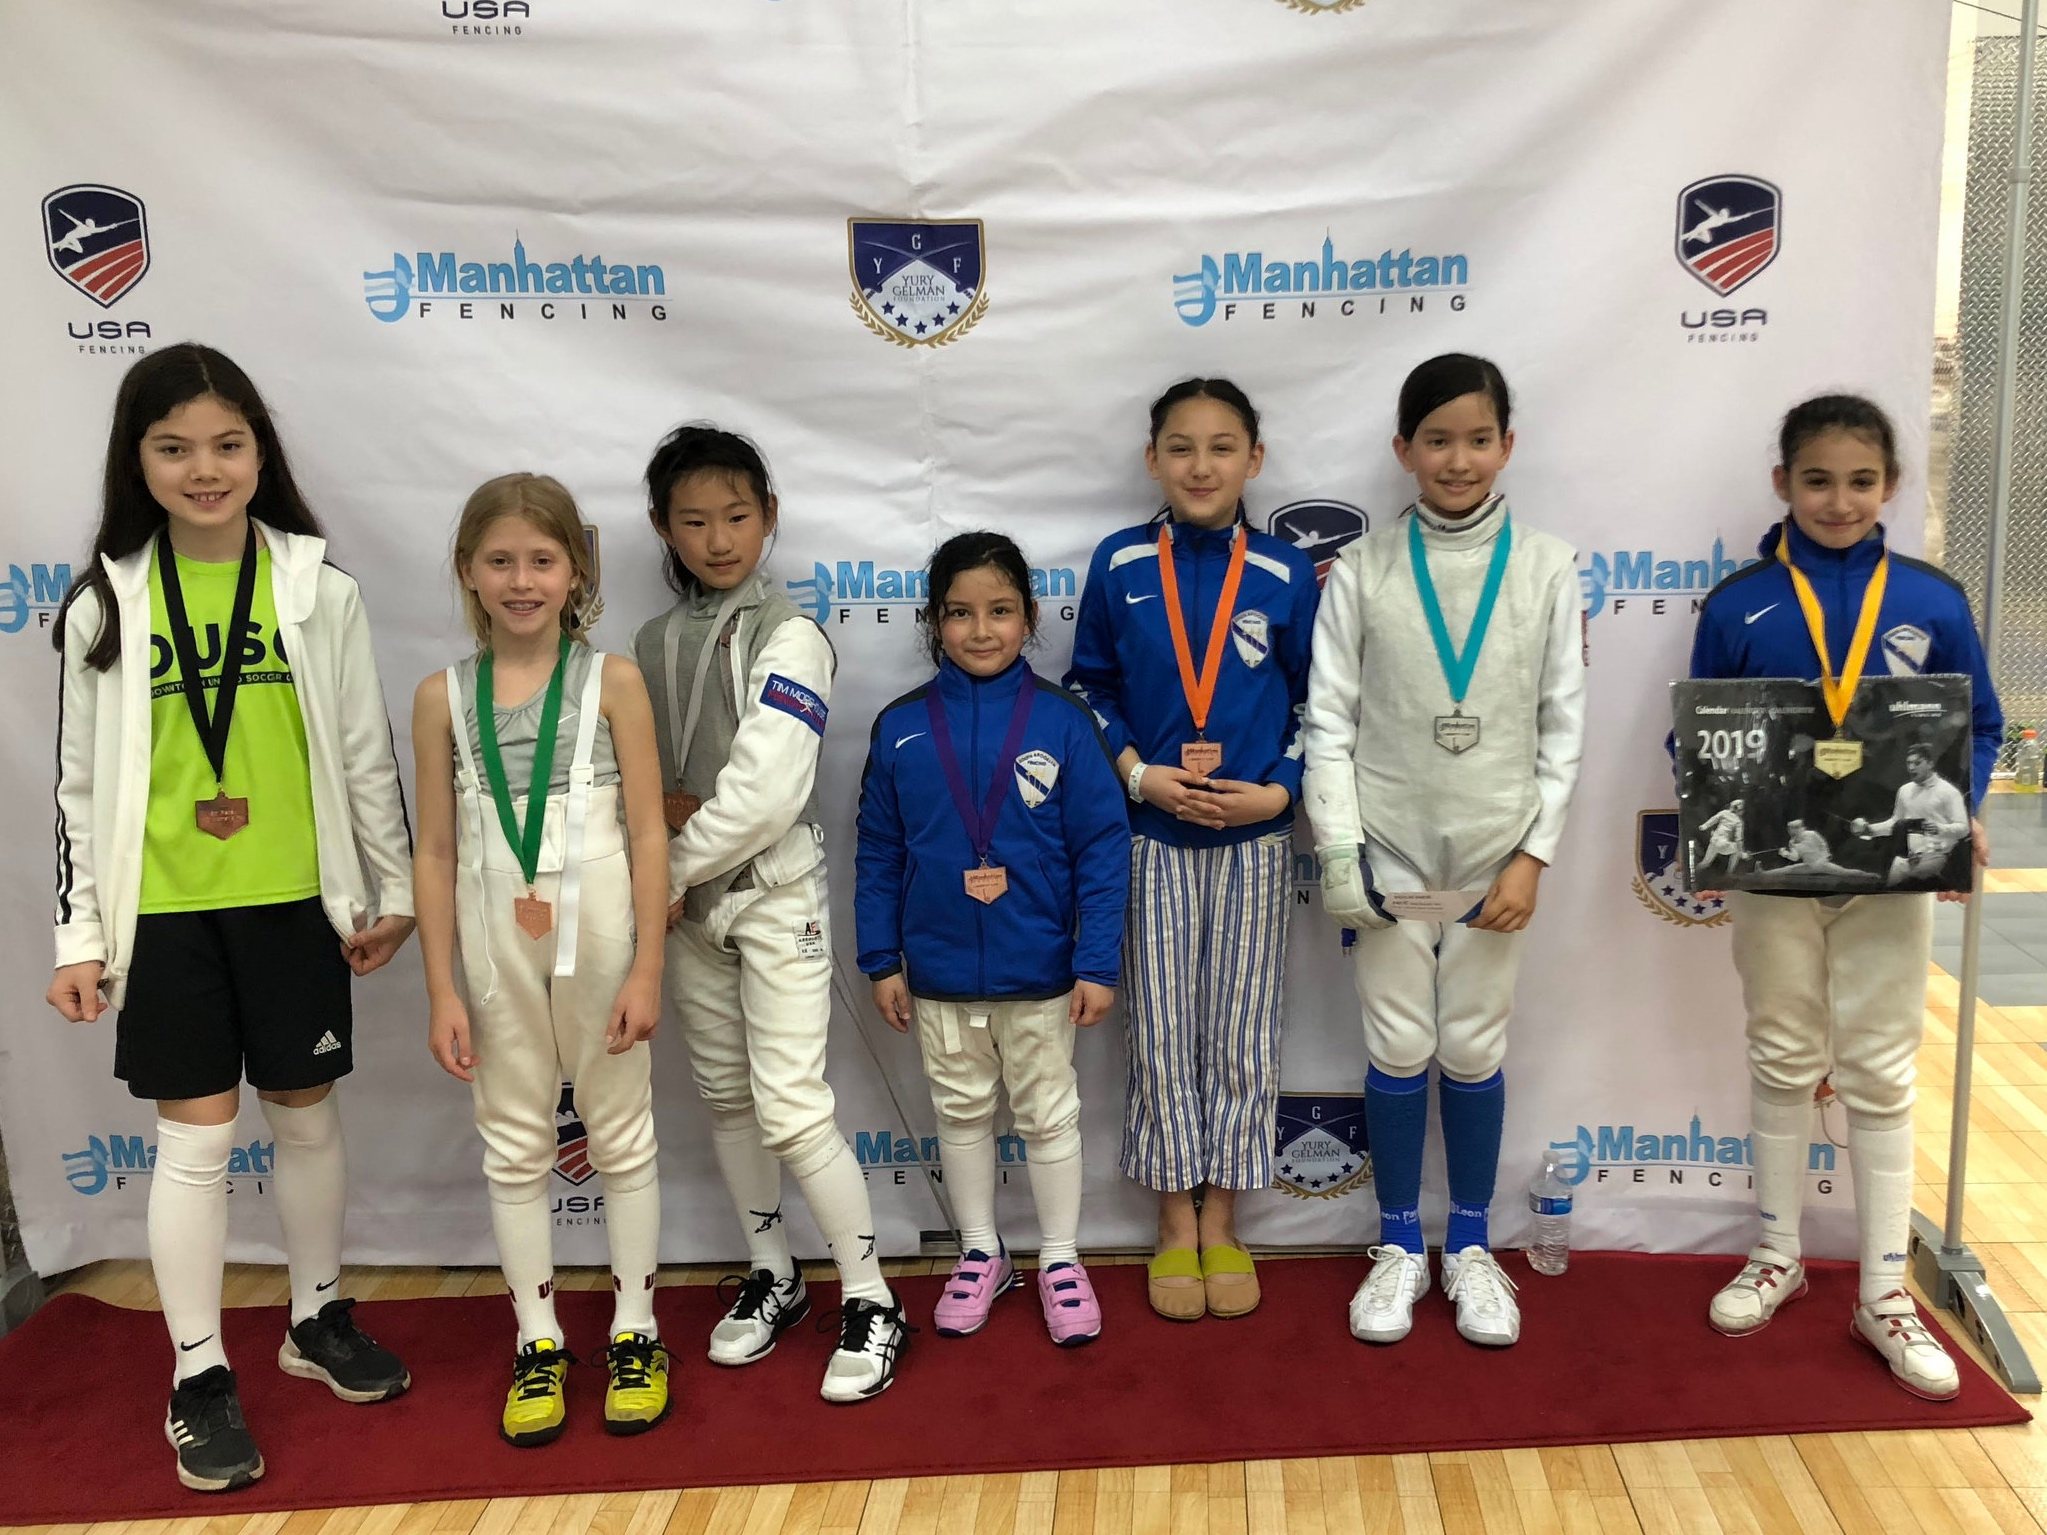 MFC LIBERTY CUP 2019 - Y10 women's foil Sara Amr Hossny 1st place  Emily Cascone 3rd place  Alex Lambrechts 3rd place  Alma Kreimer 15th place  May 19th 2019